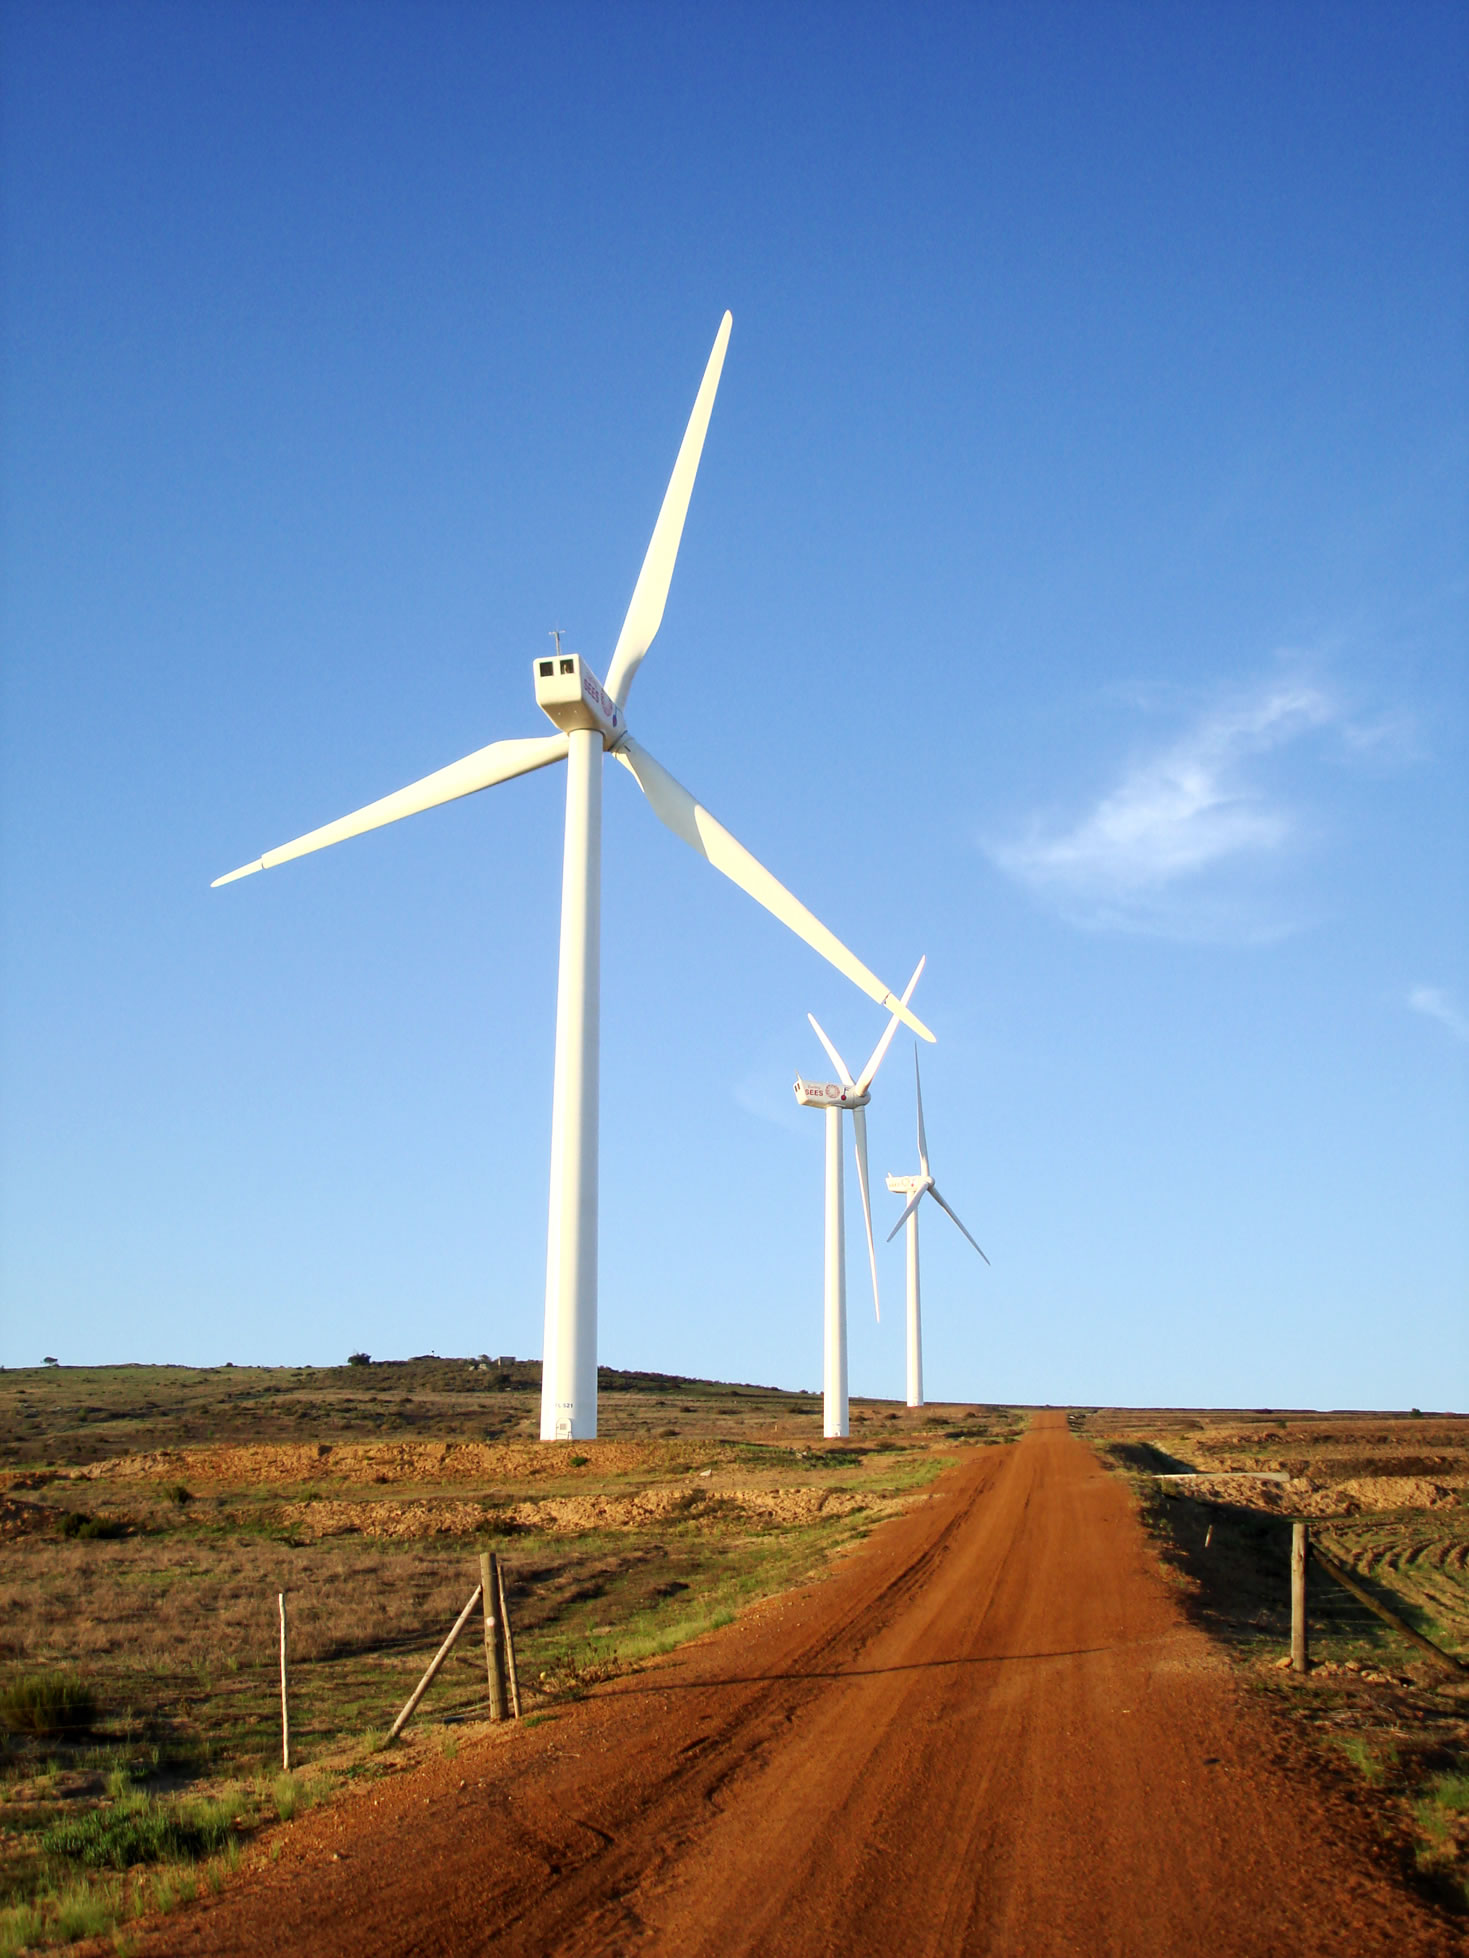 A wind farm in Cape Town, South Africa